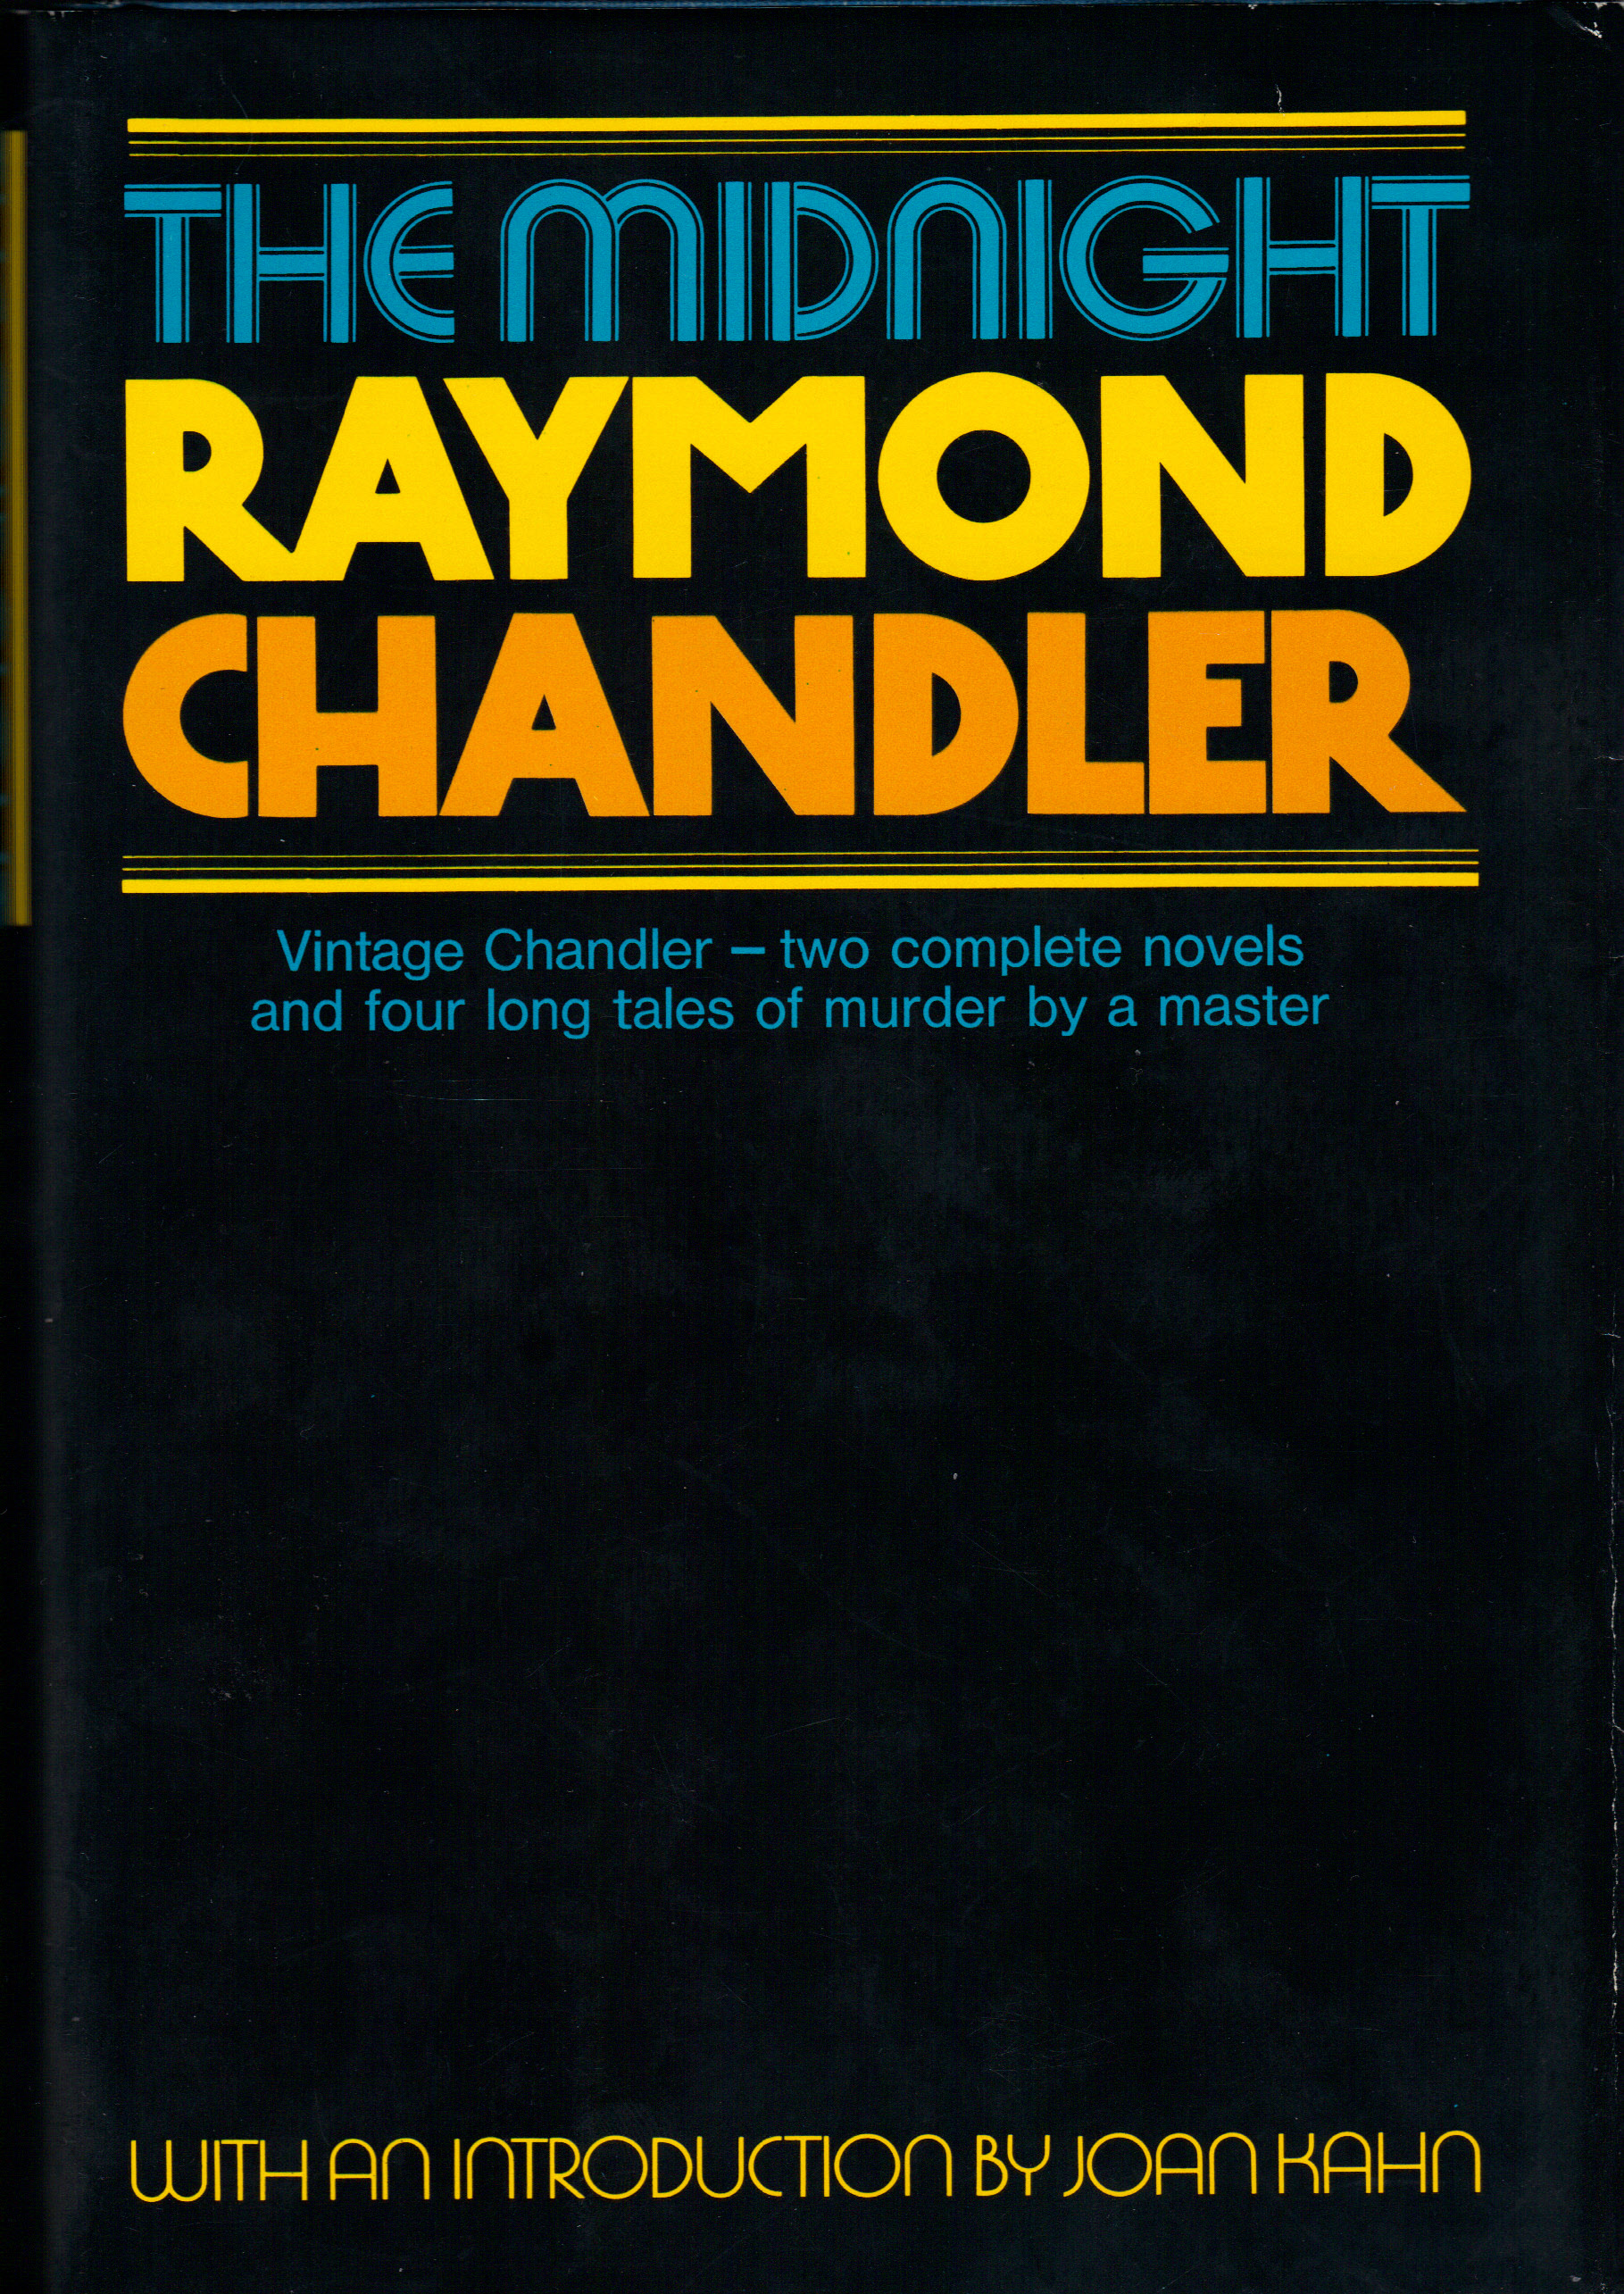 Image for THE MIDNIGHT RAYMOND CHANDLER